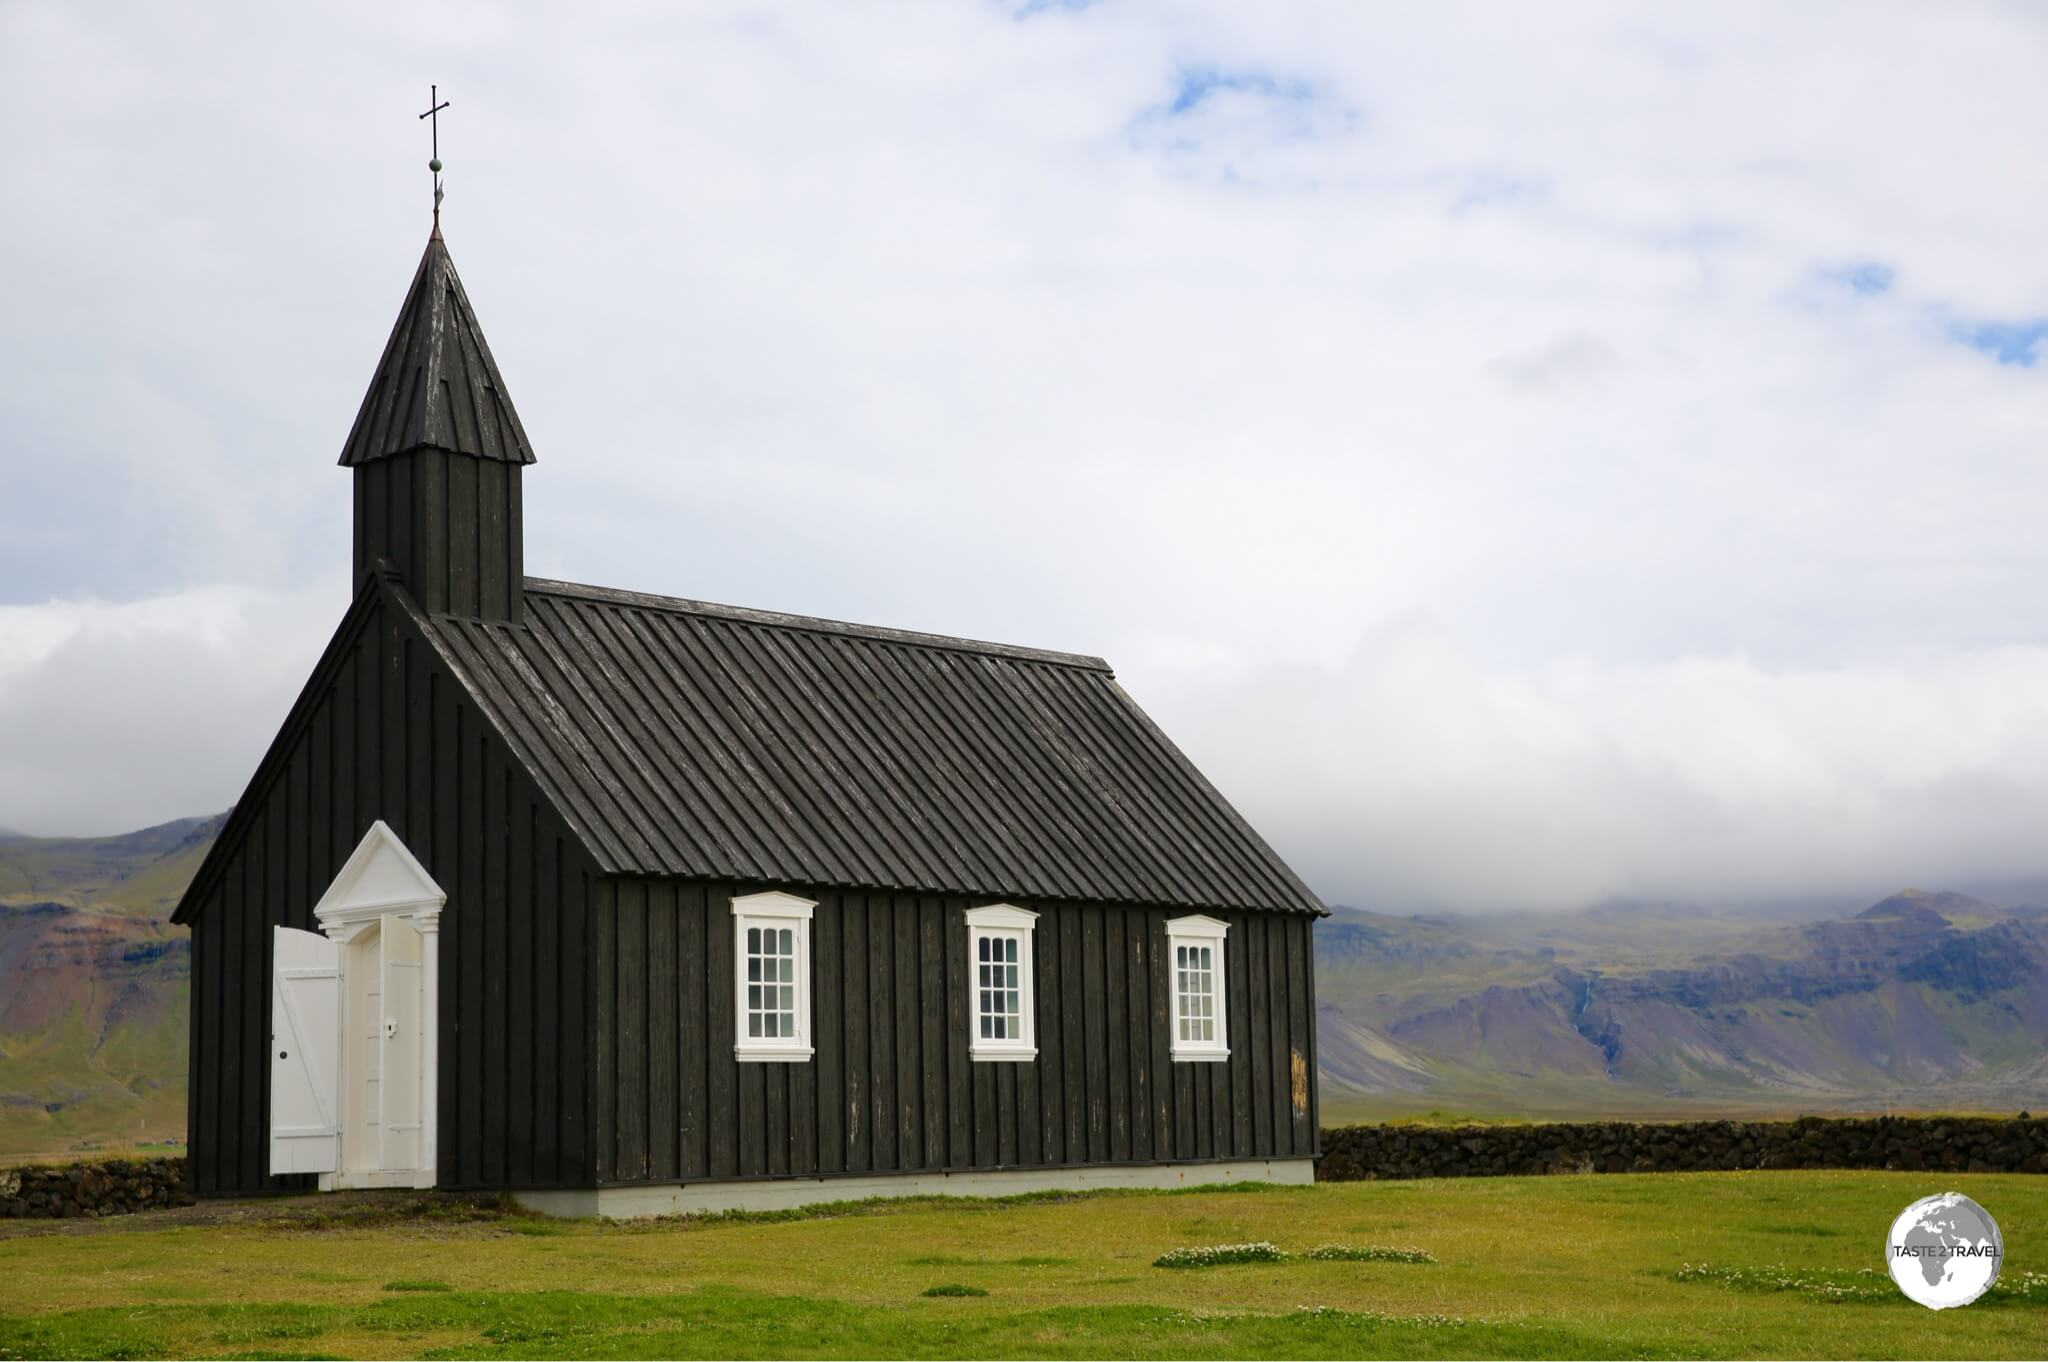 The black wooden Budarkirkja (church) at Budir.